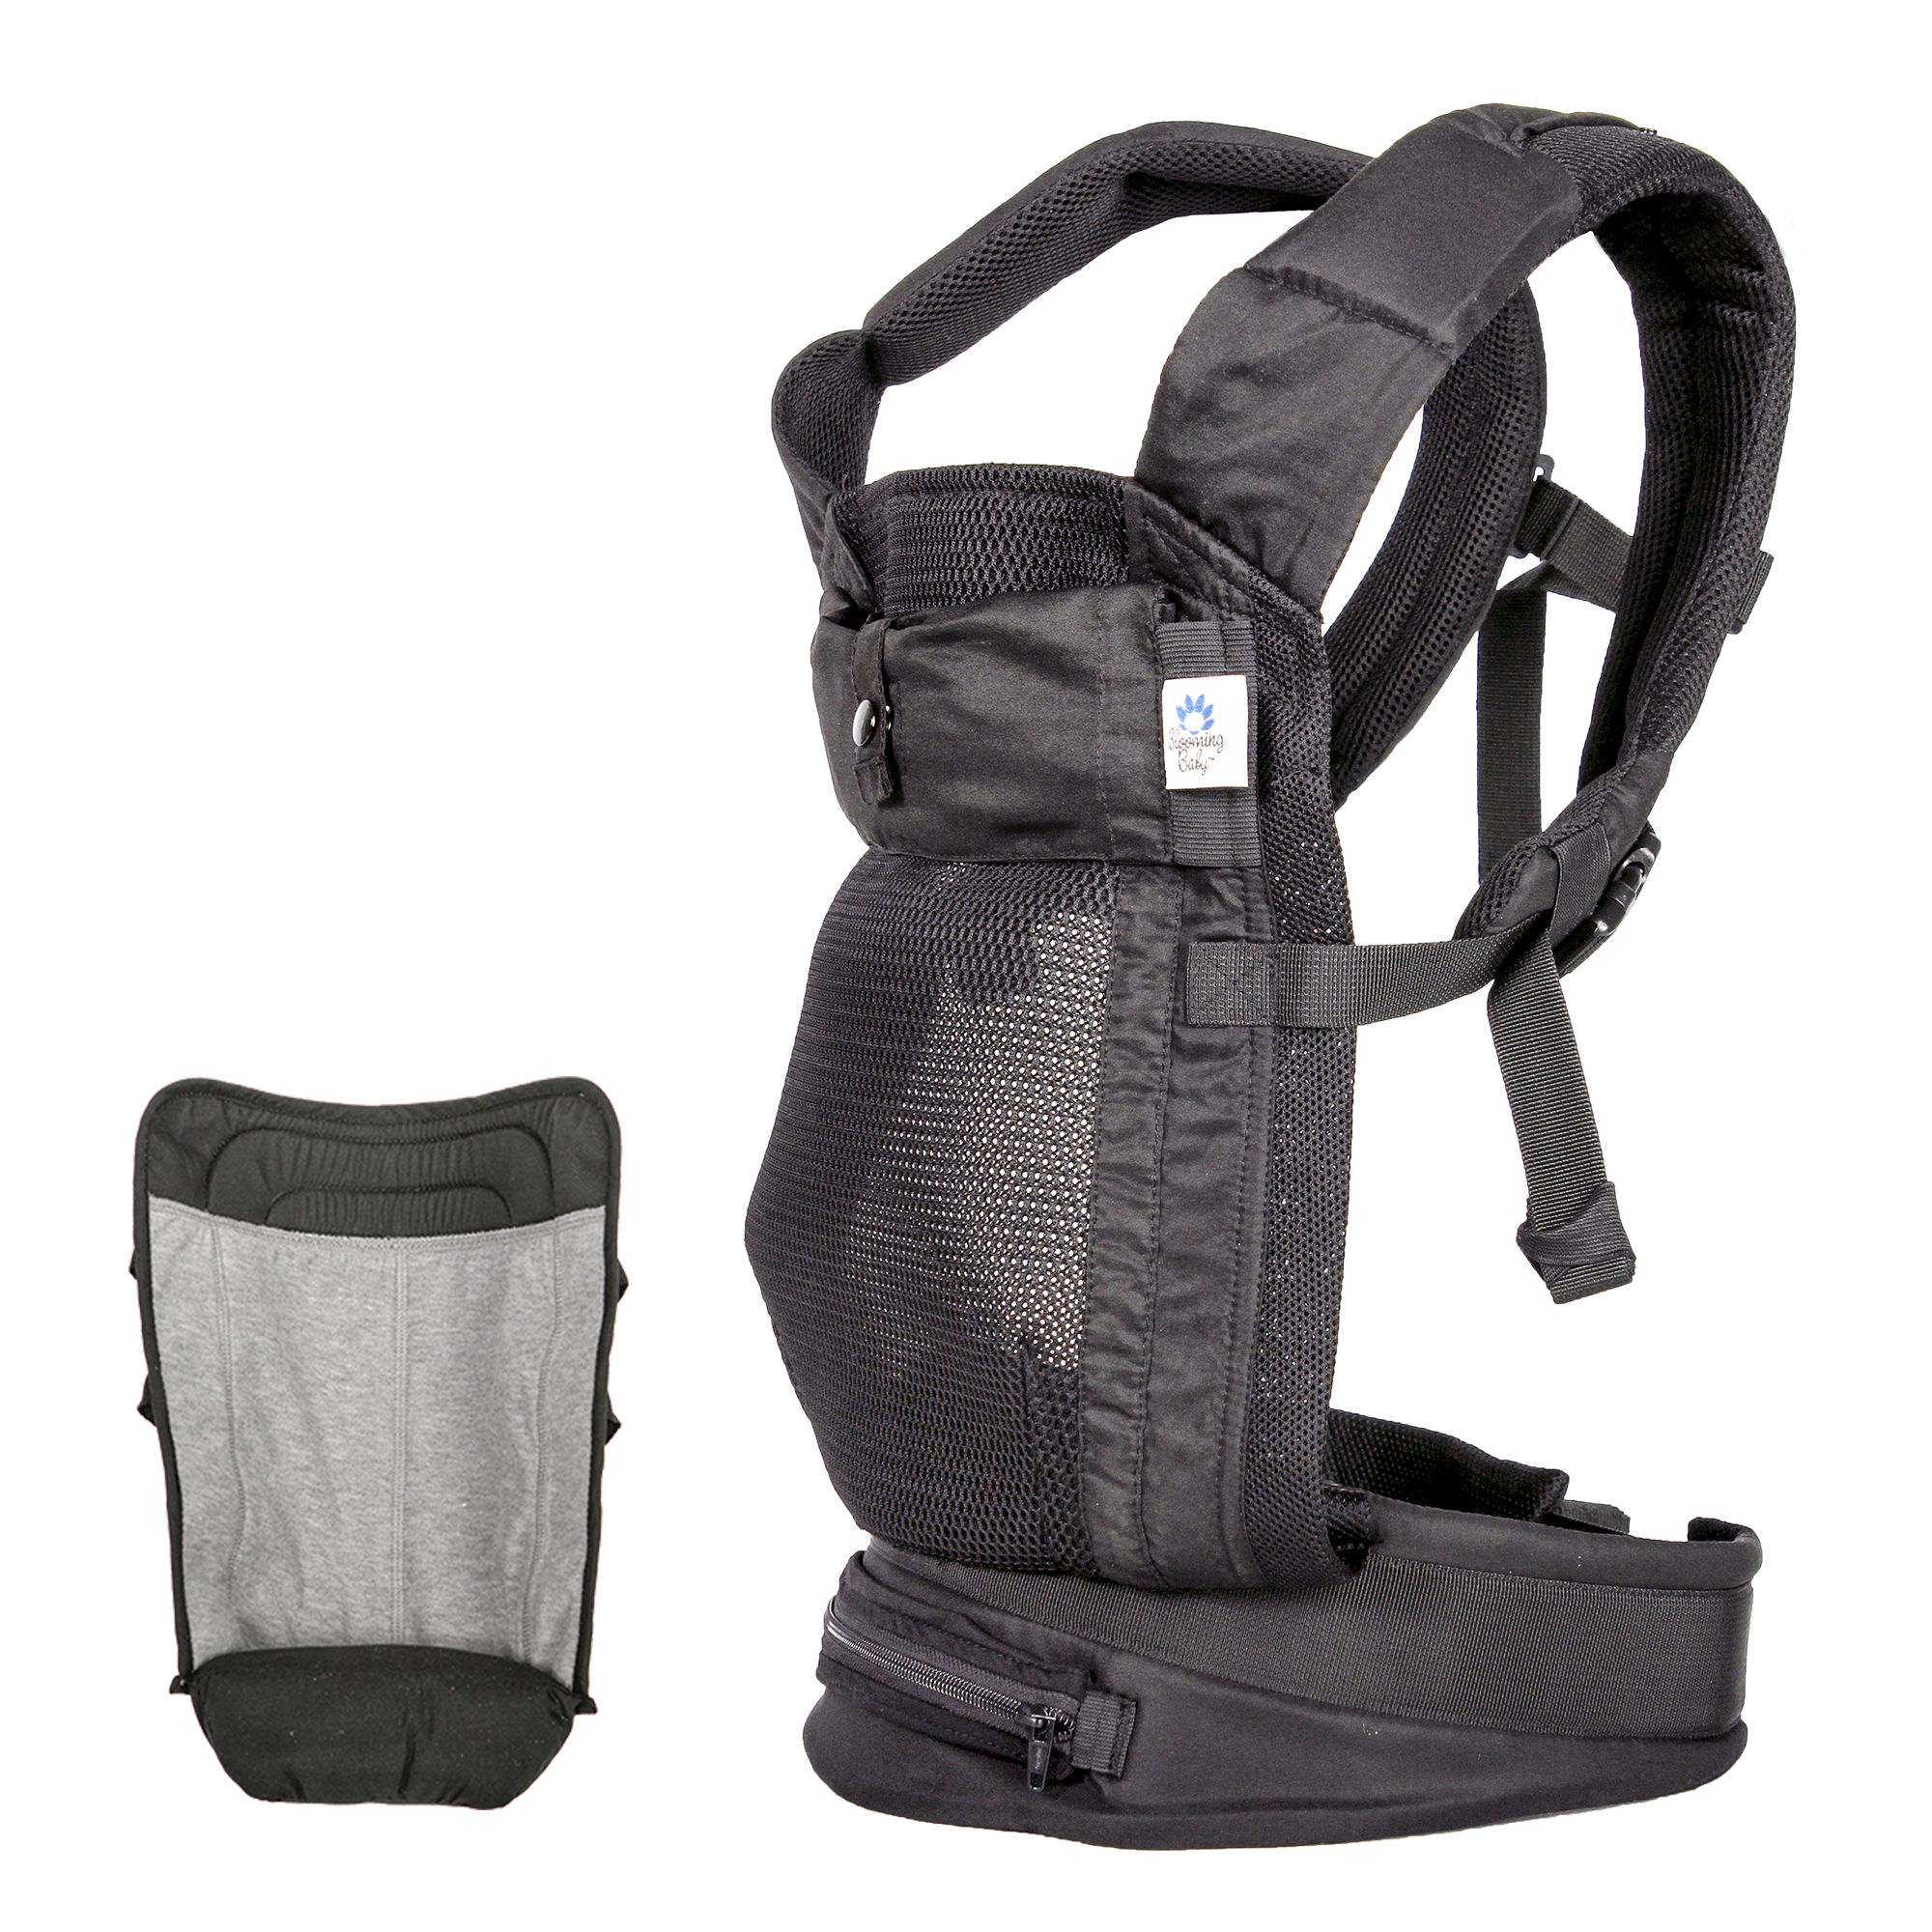 Blooming Baby Black Airflow Carrier with Gray Infant Insert